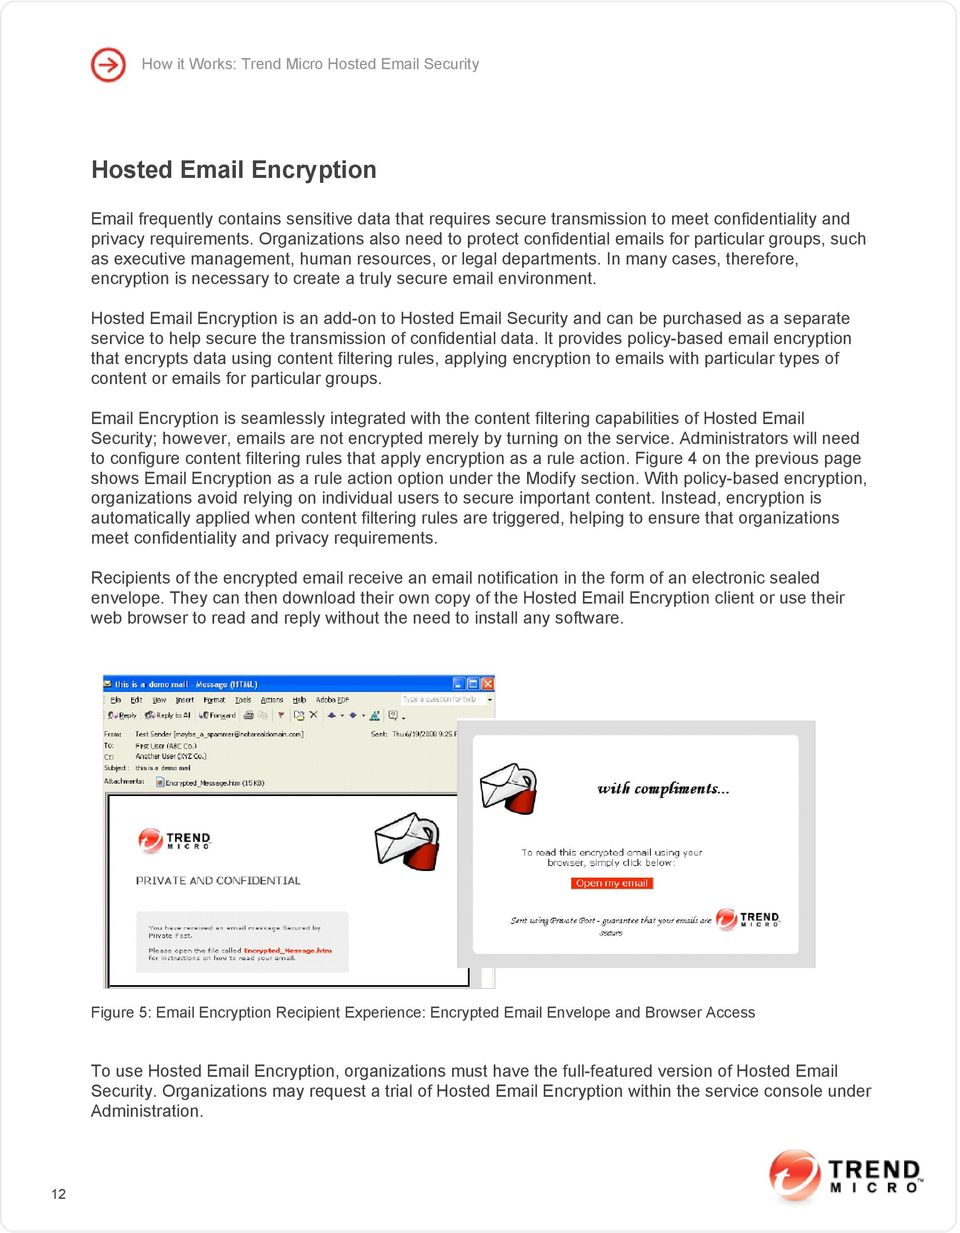 In many cases, therefore, encryption is necessary to create a truly secure email environment.